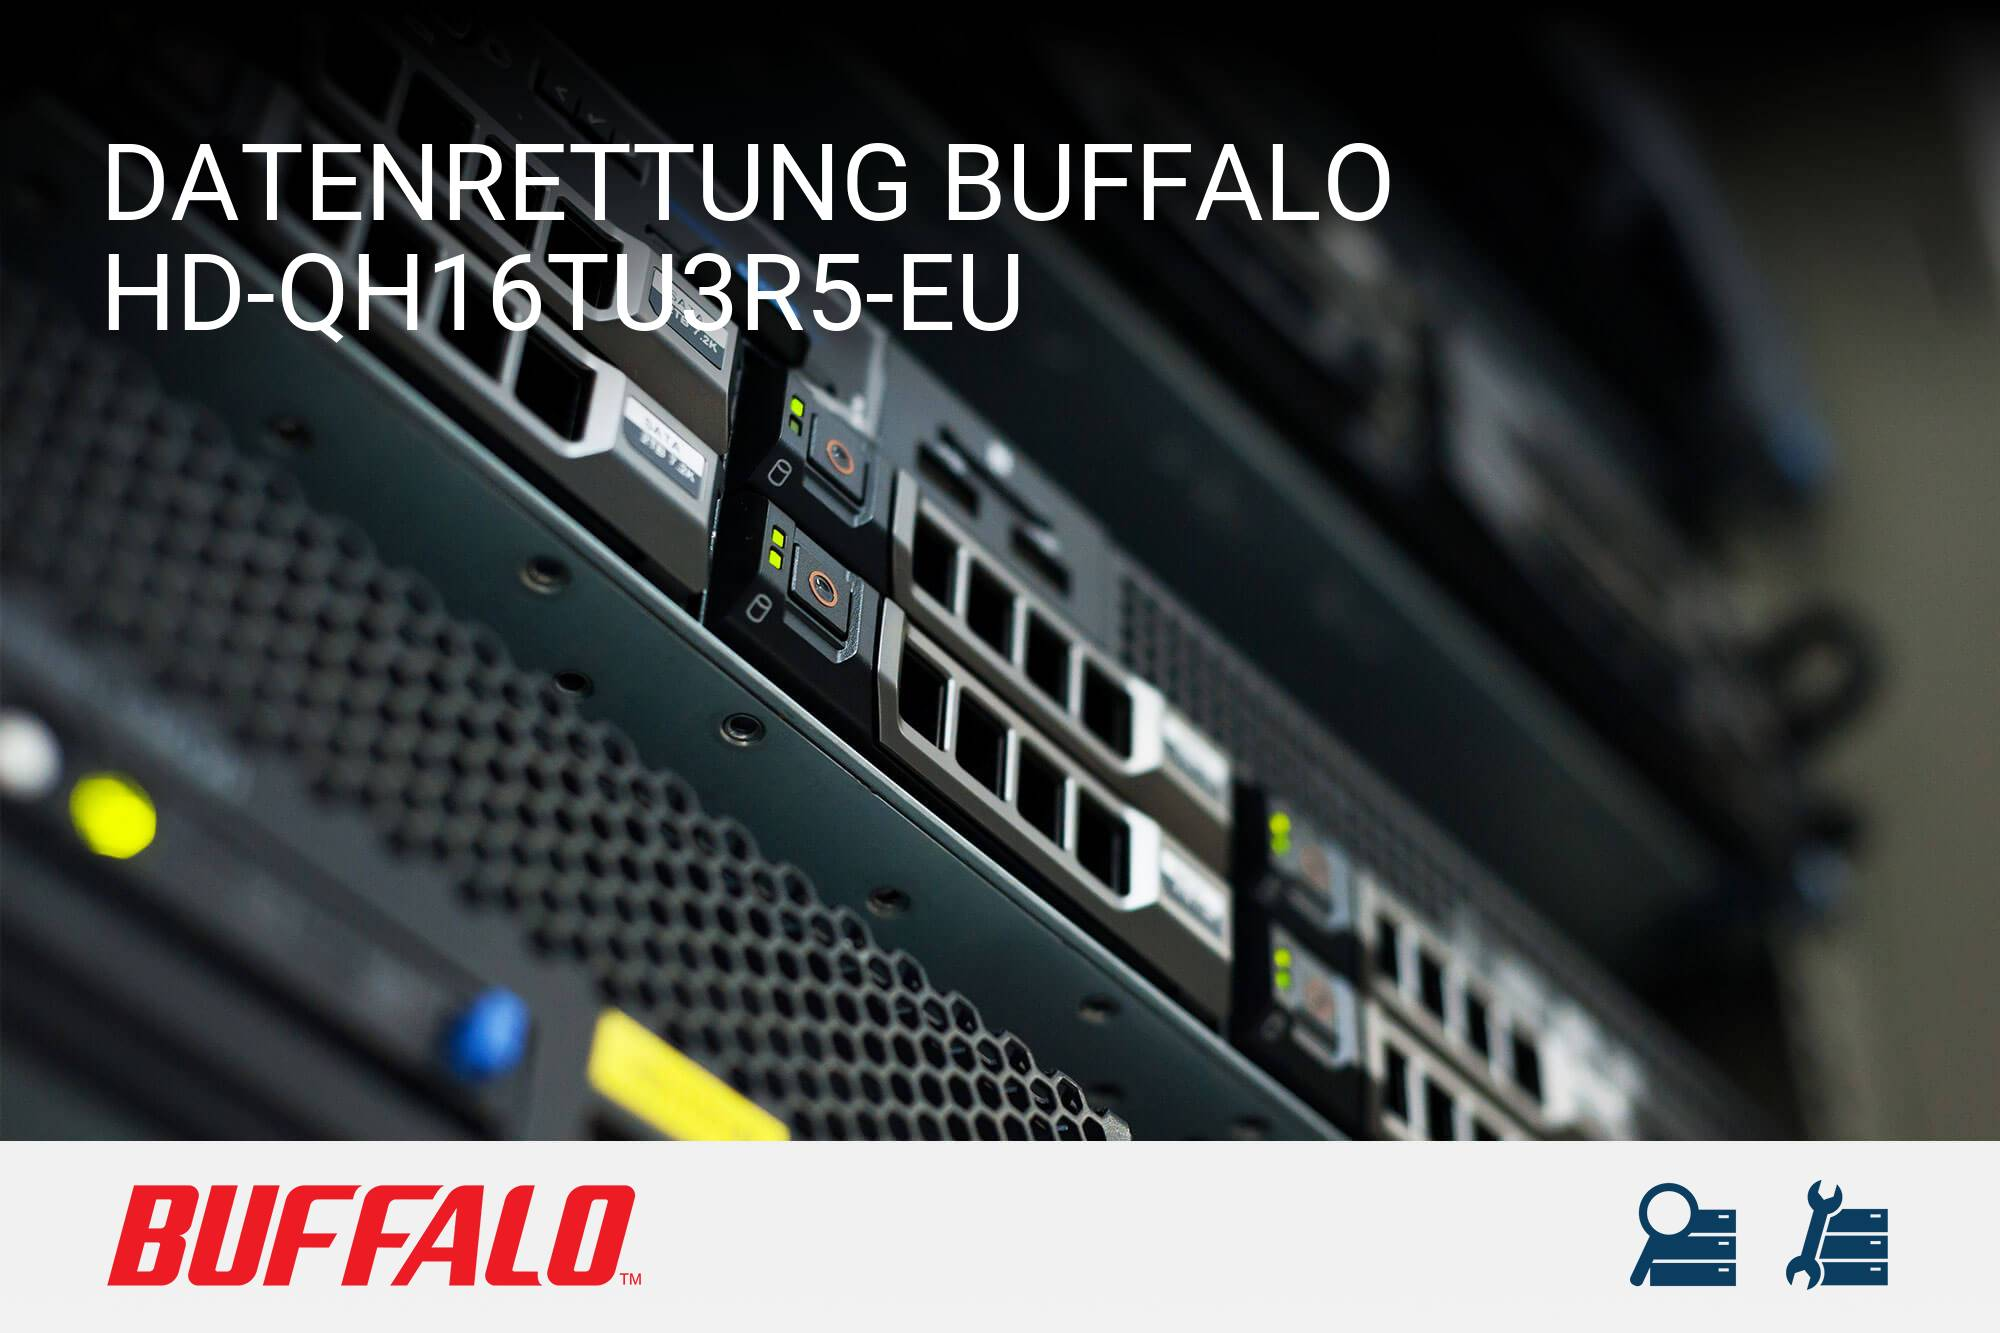 Buffalo HD-QH16TU3R5-EU